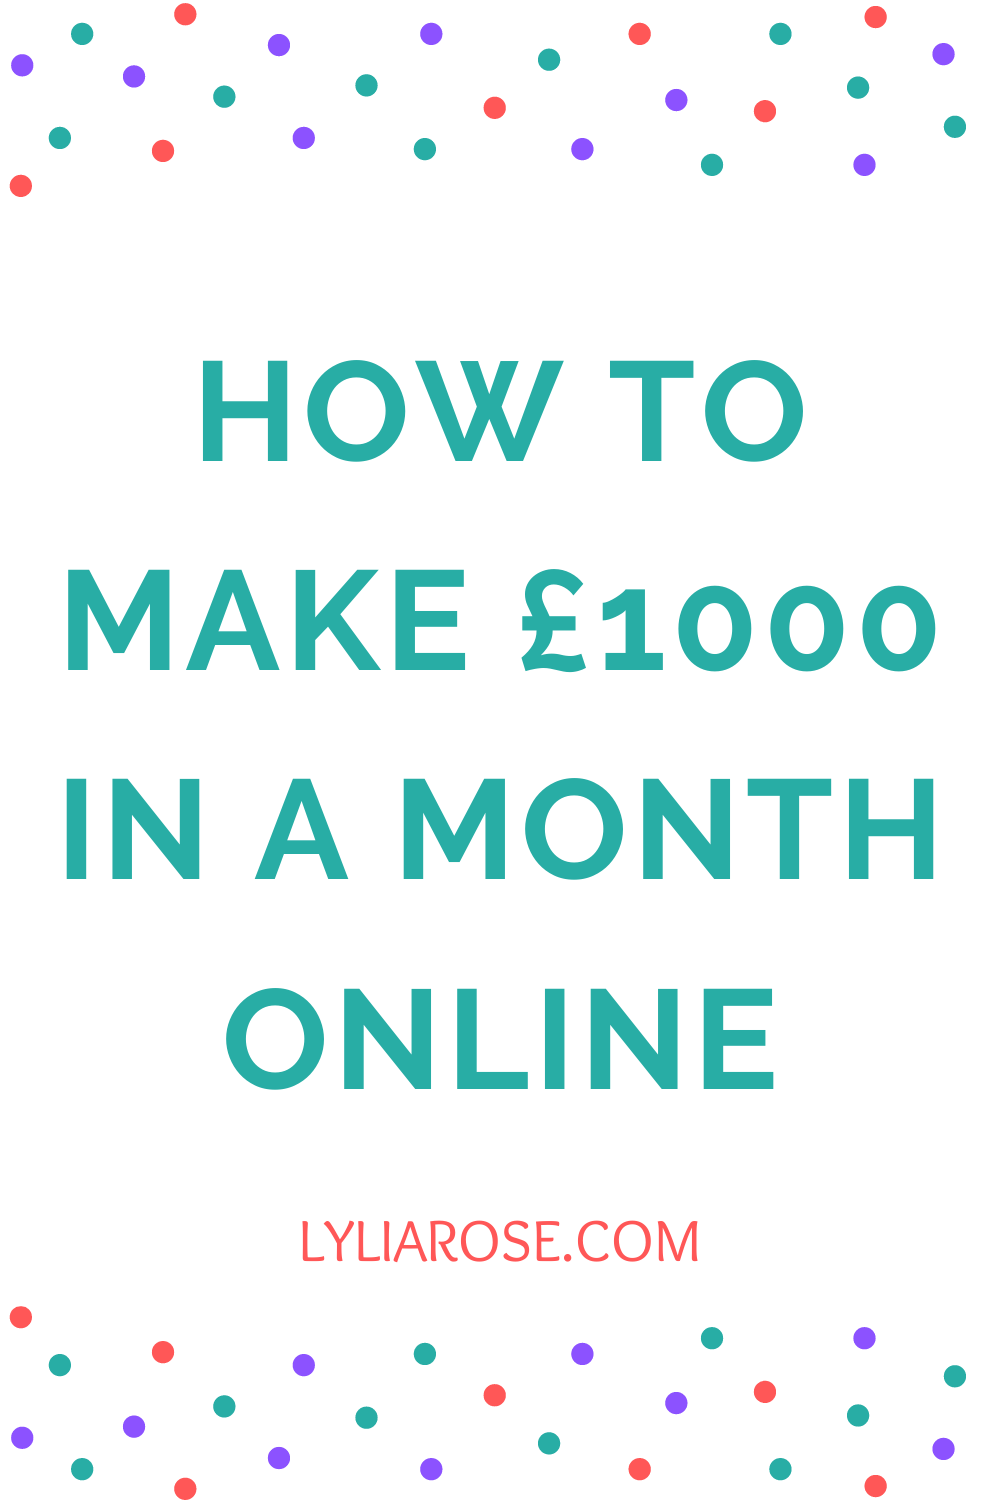 How to make £1000 in a month online (1)